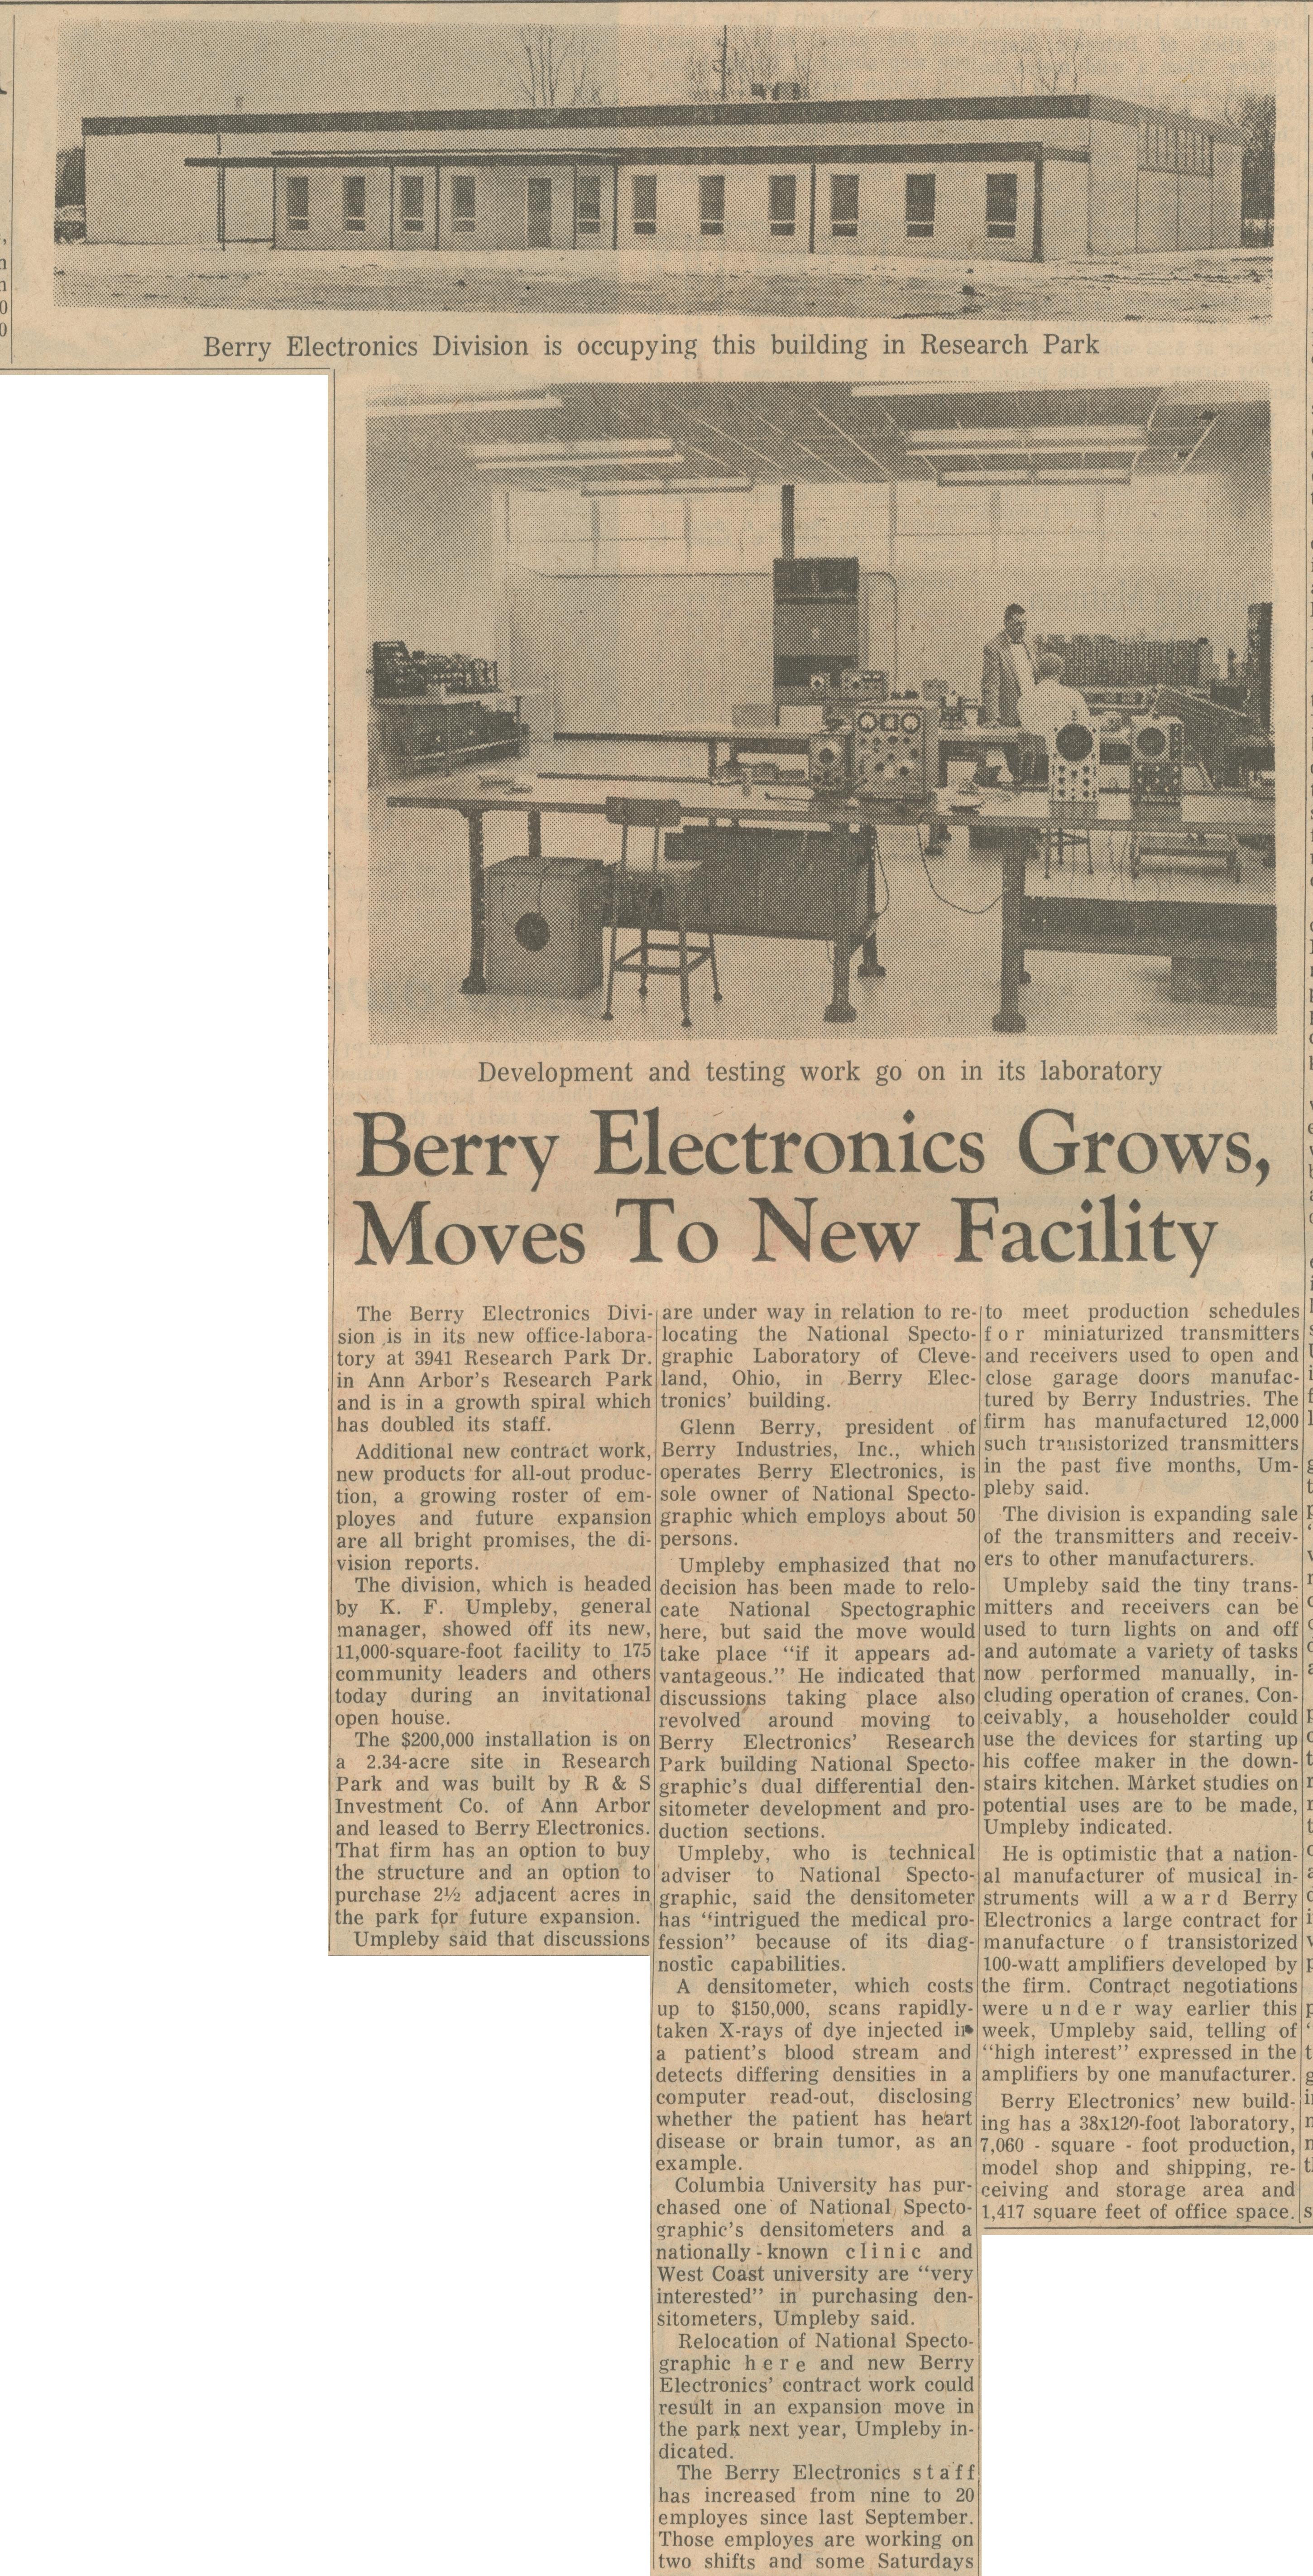 Berry Electronics Grows, Moves To New Facility image